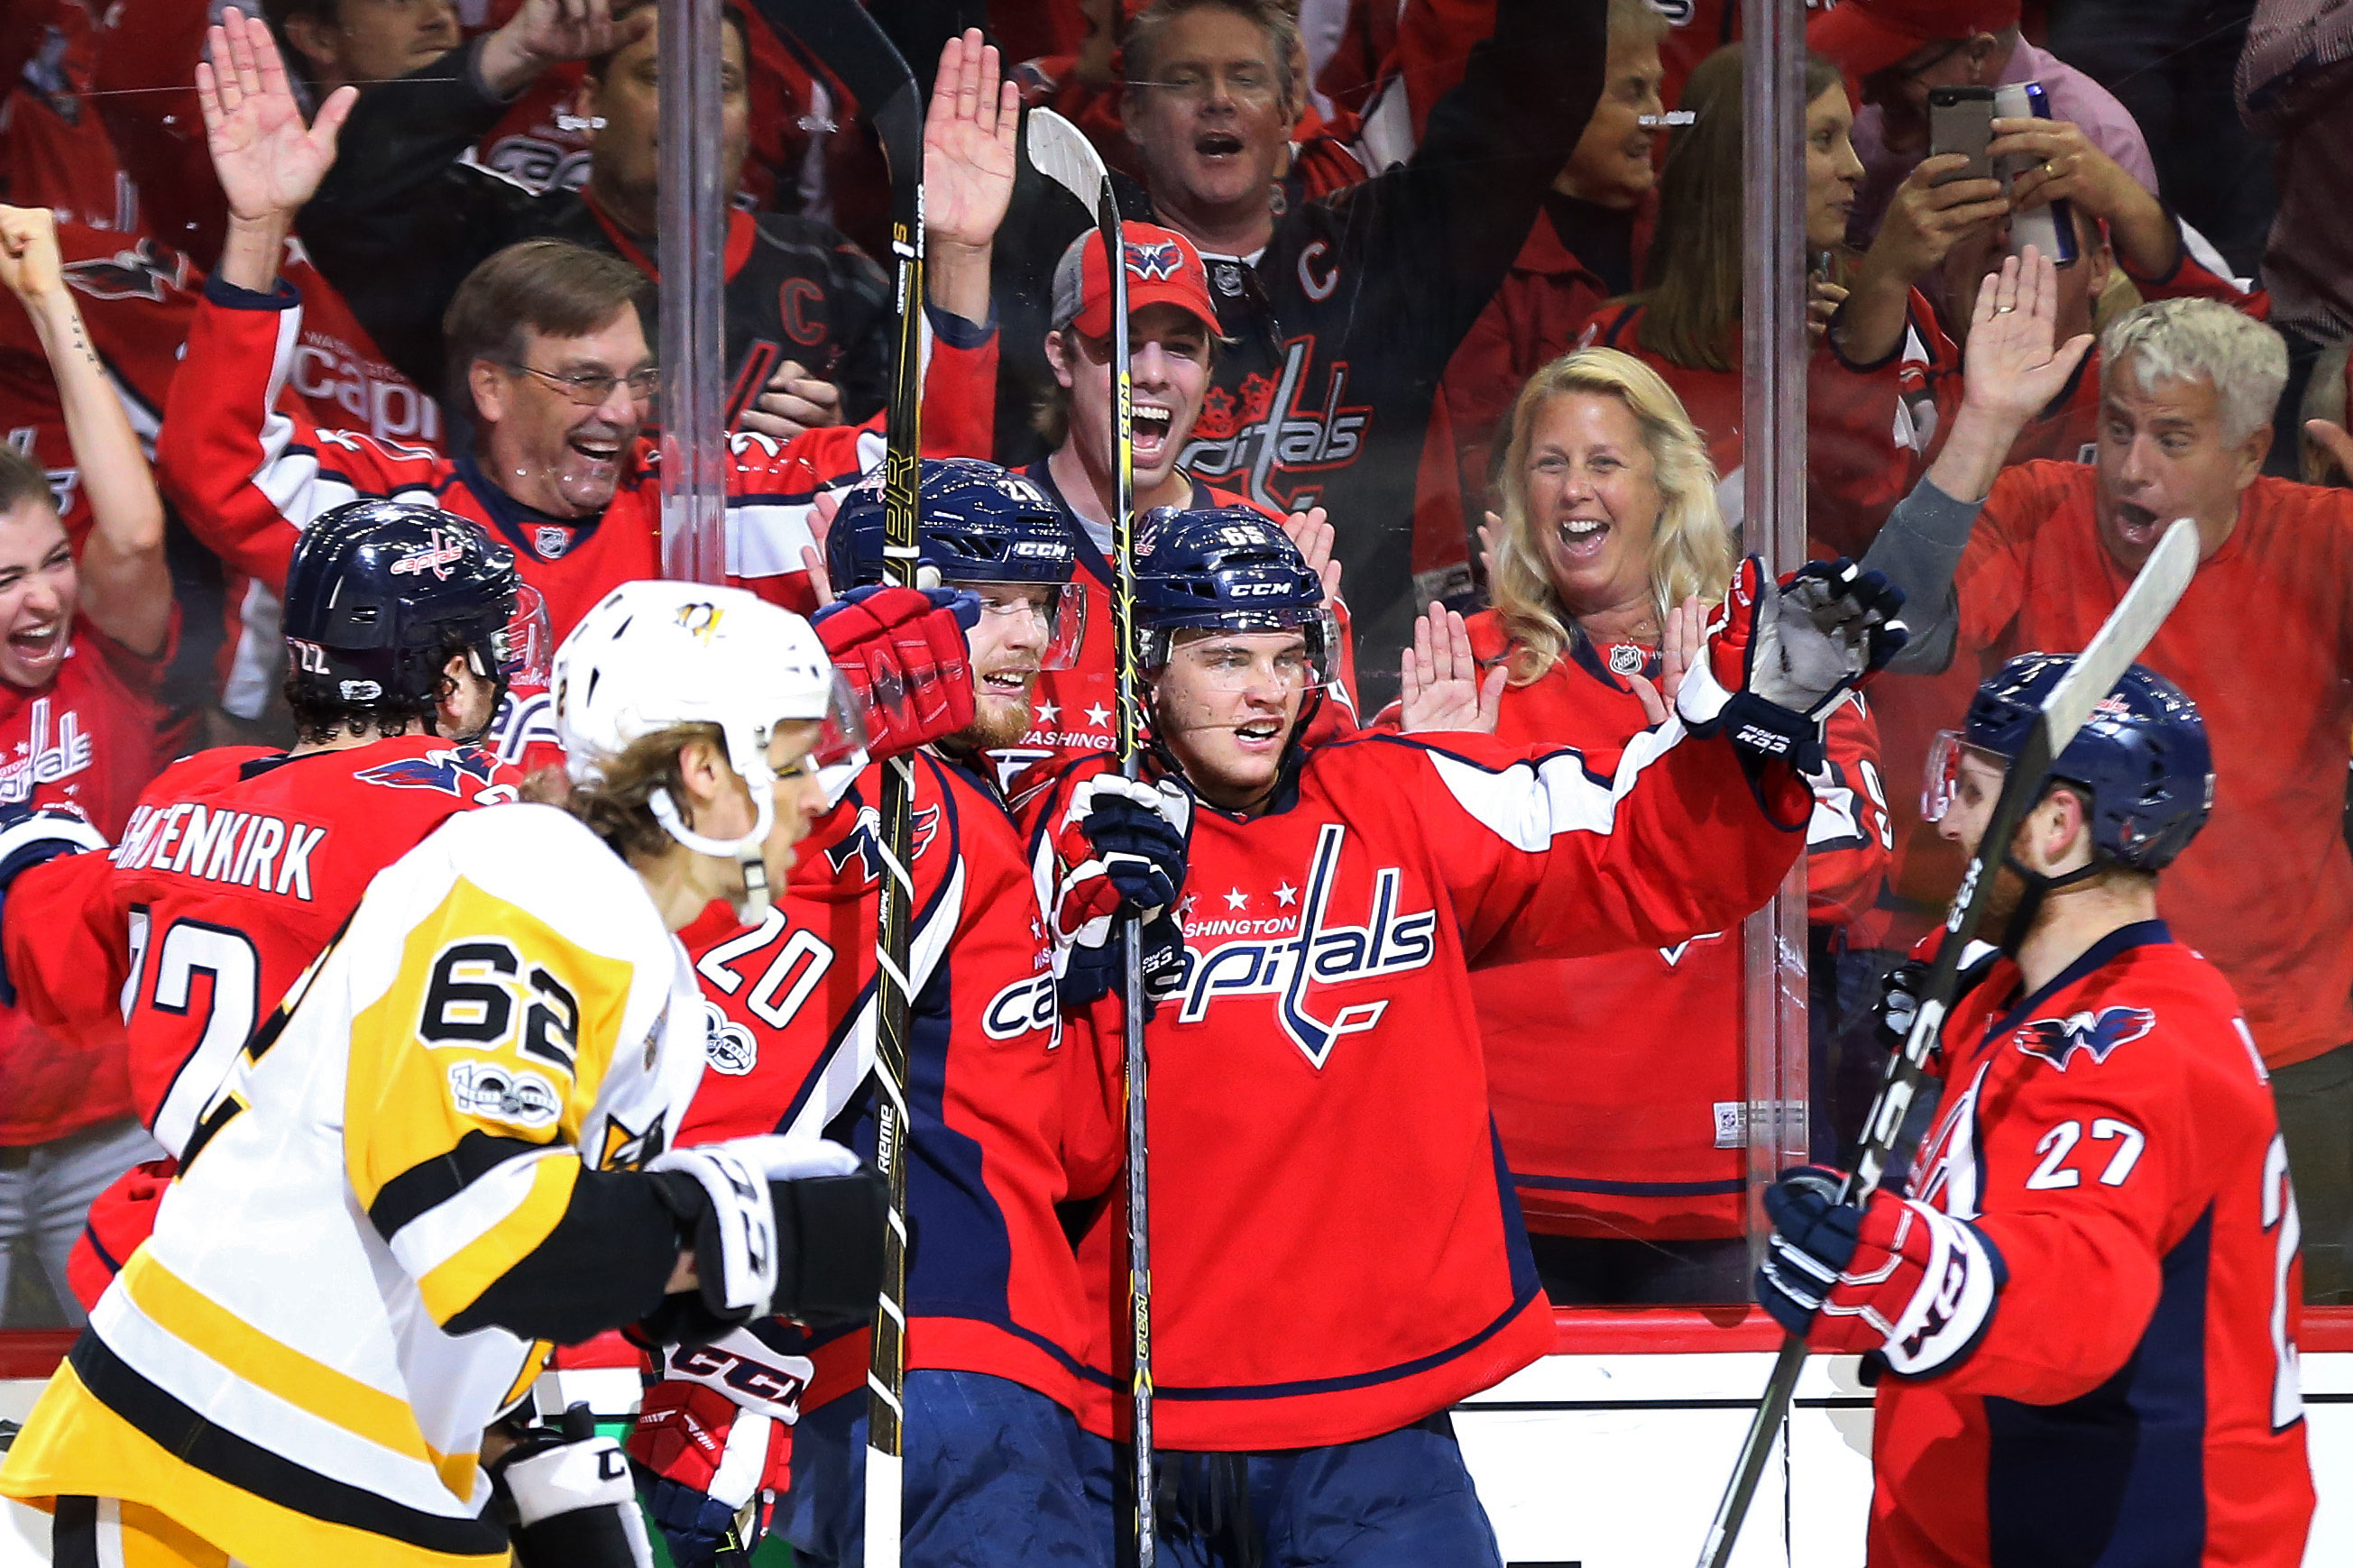 10049167-nhl-stanley-cup-playoffs-pittsburgh-penguins-at-washington-capitals